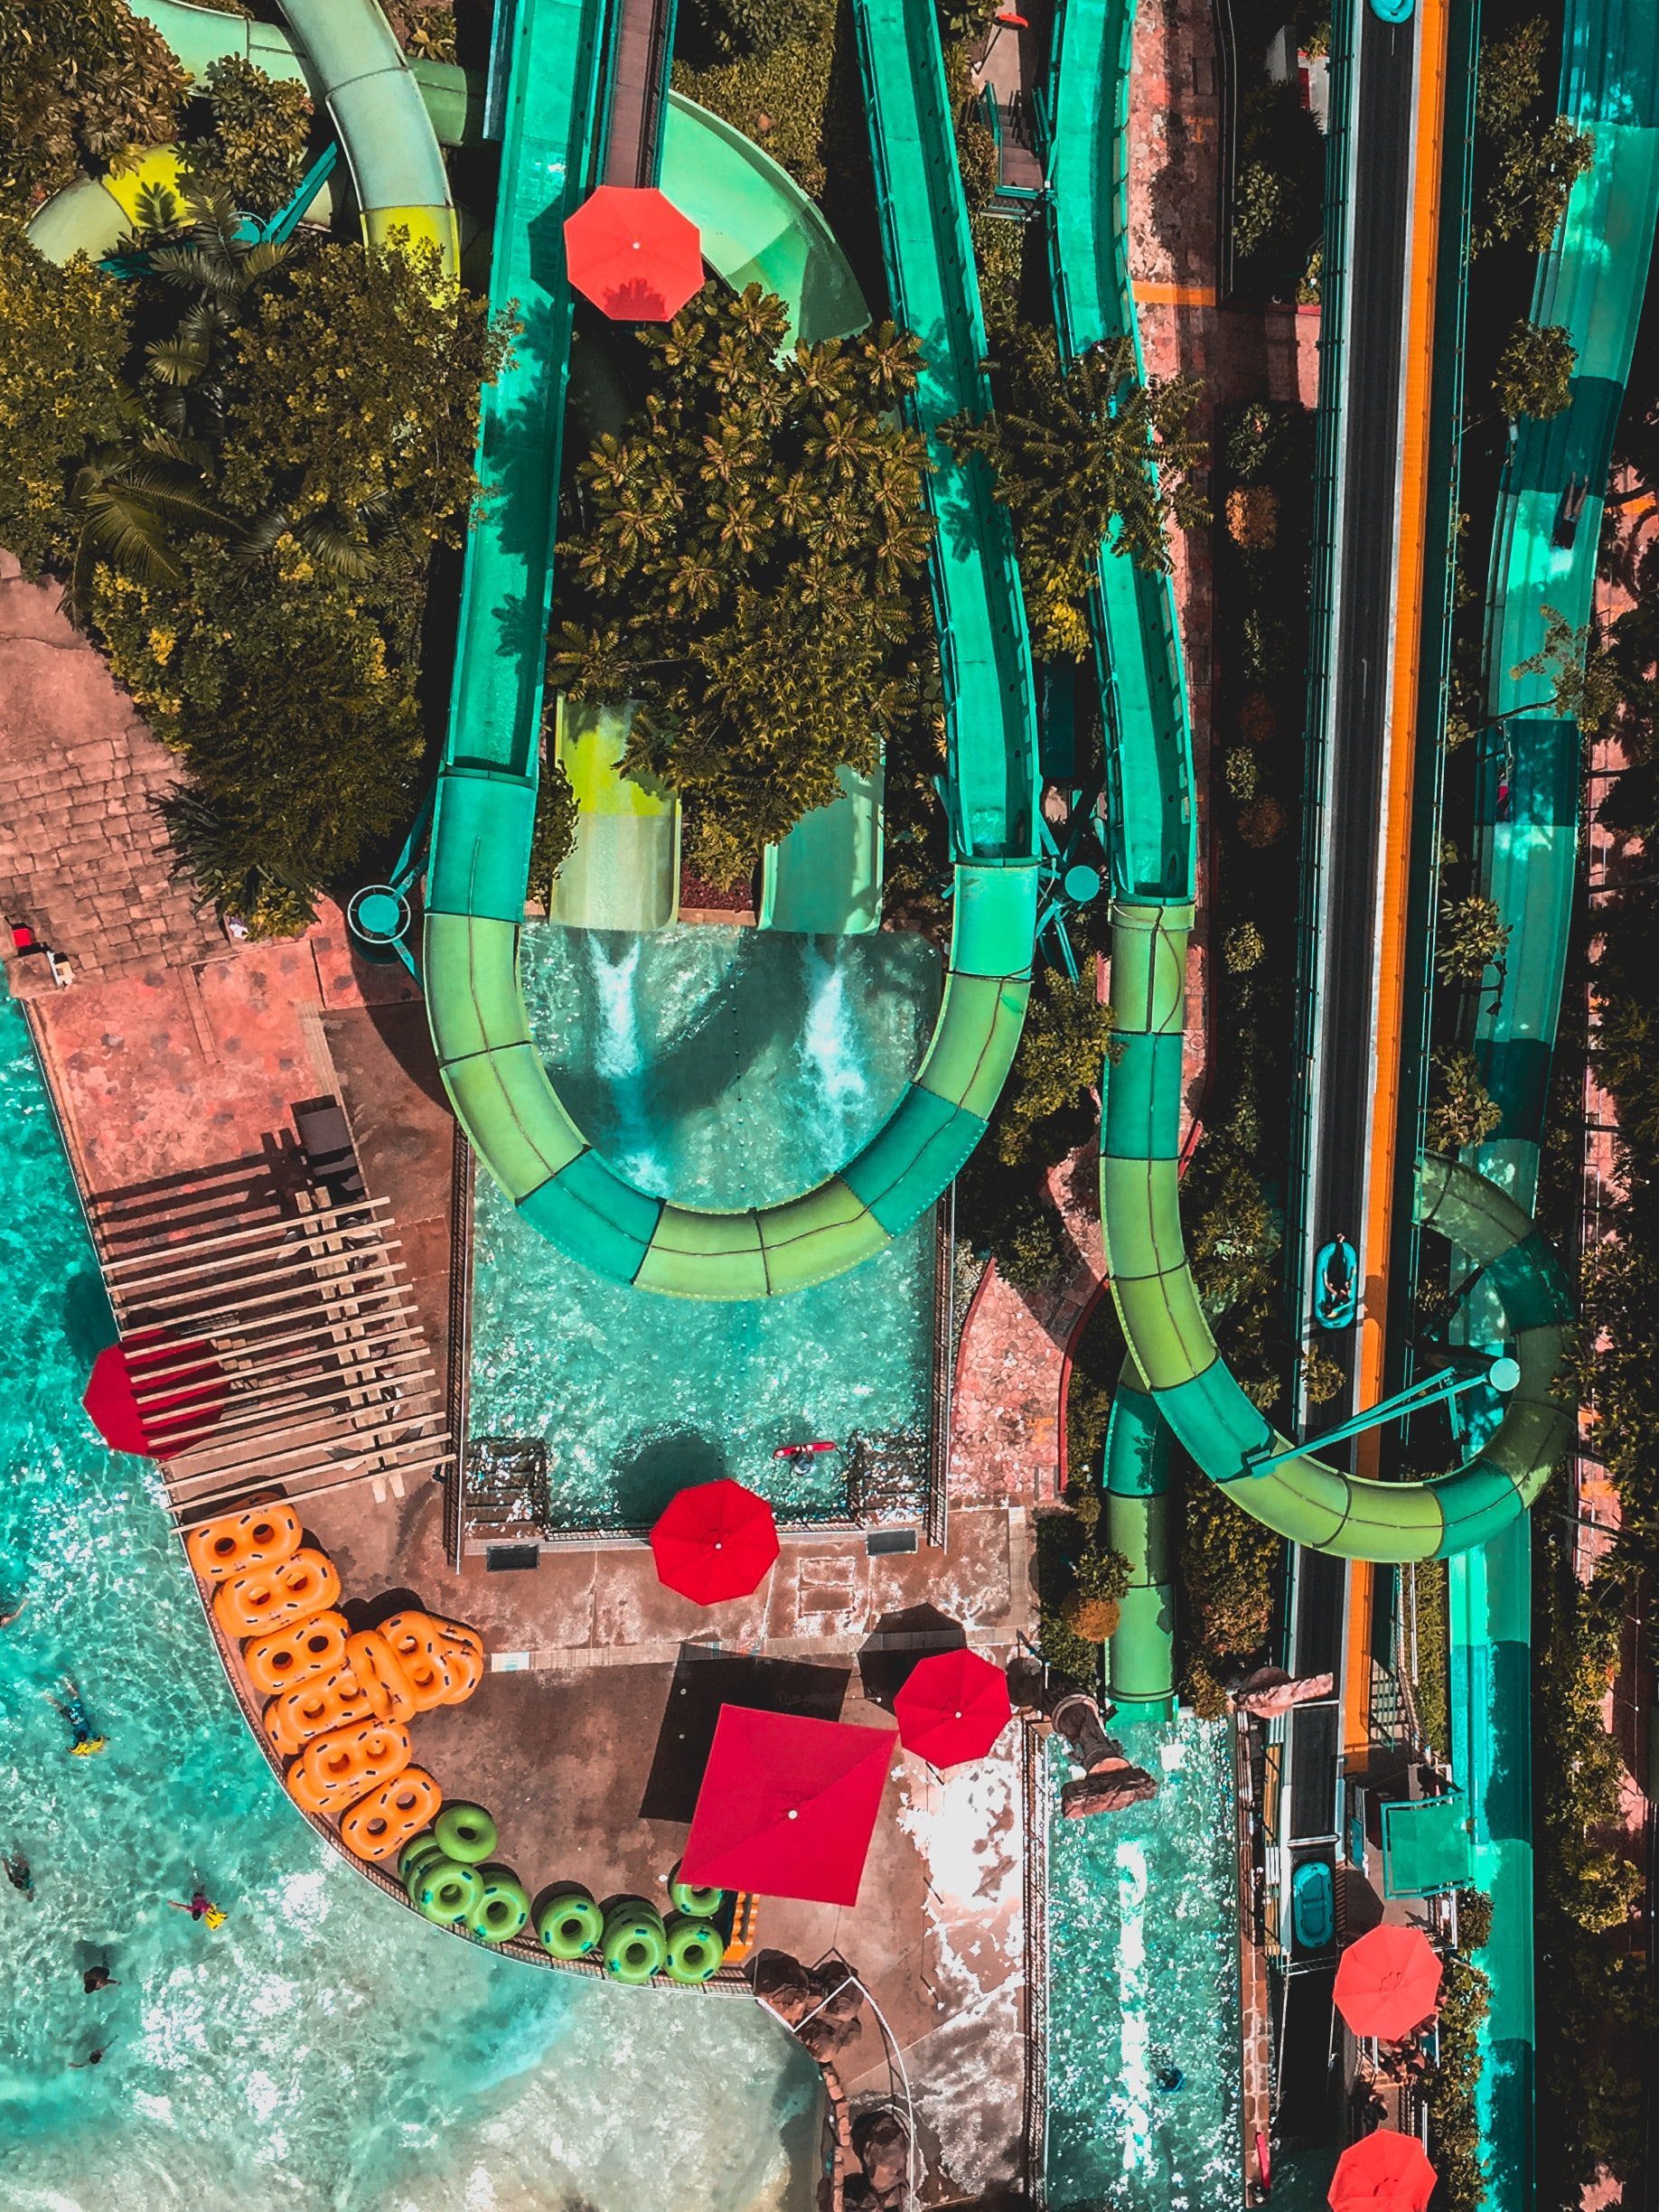 A view of a large waterslide from the sky.